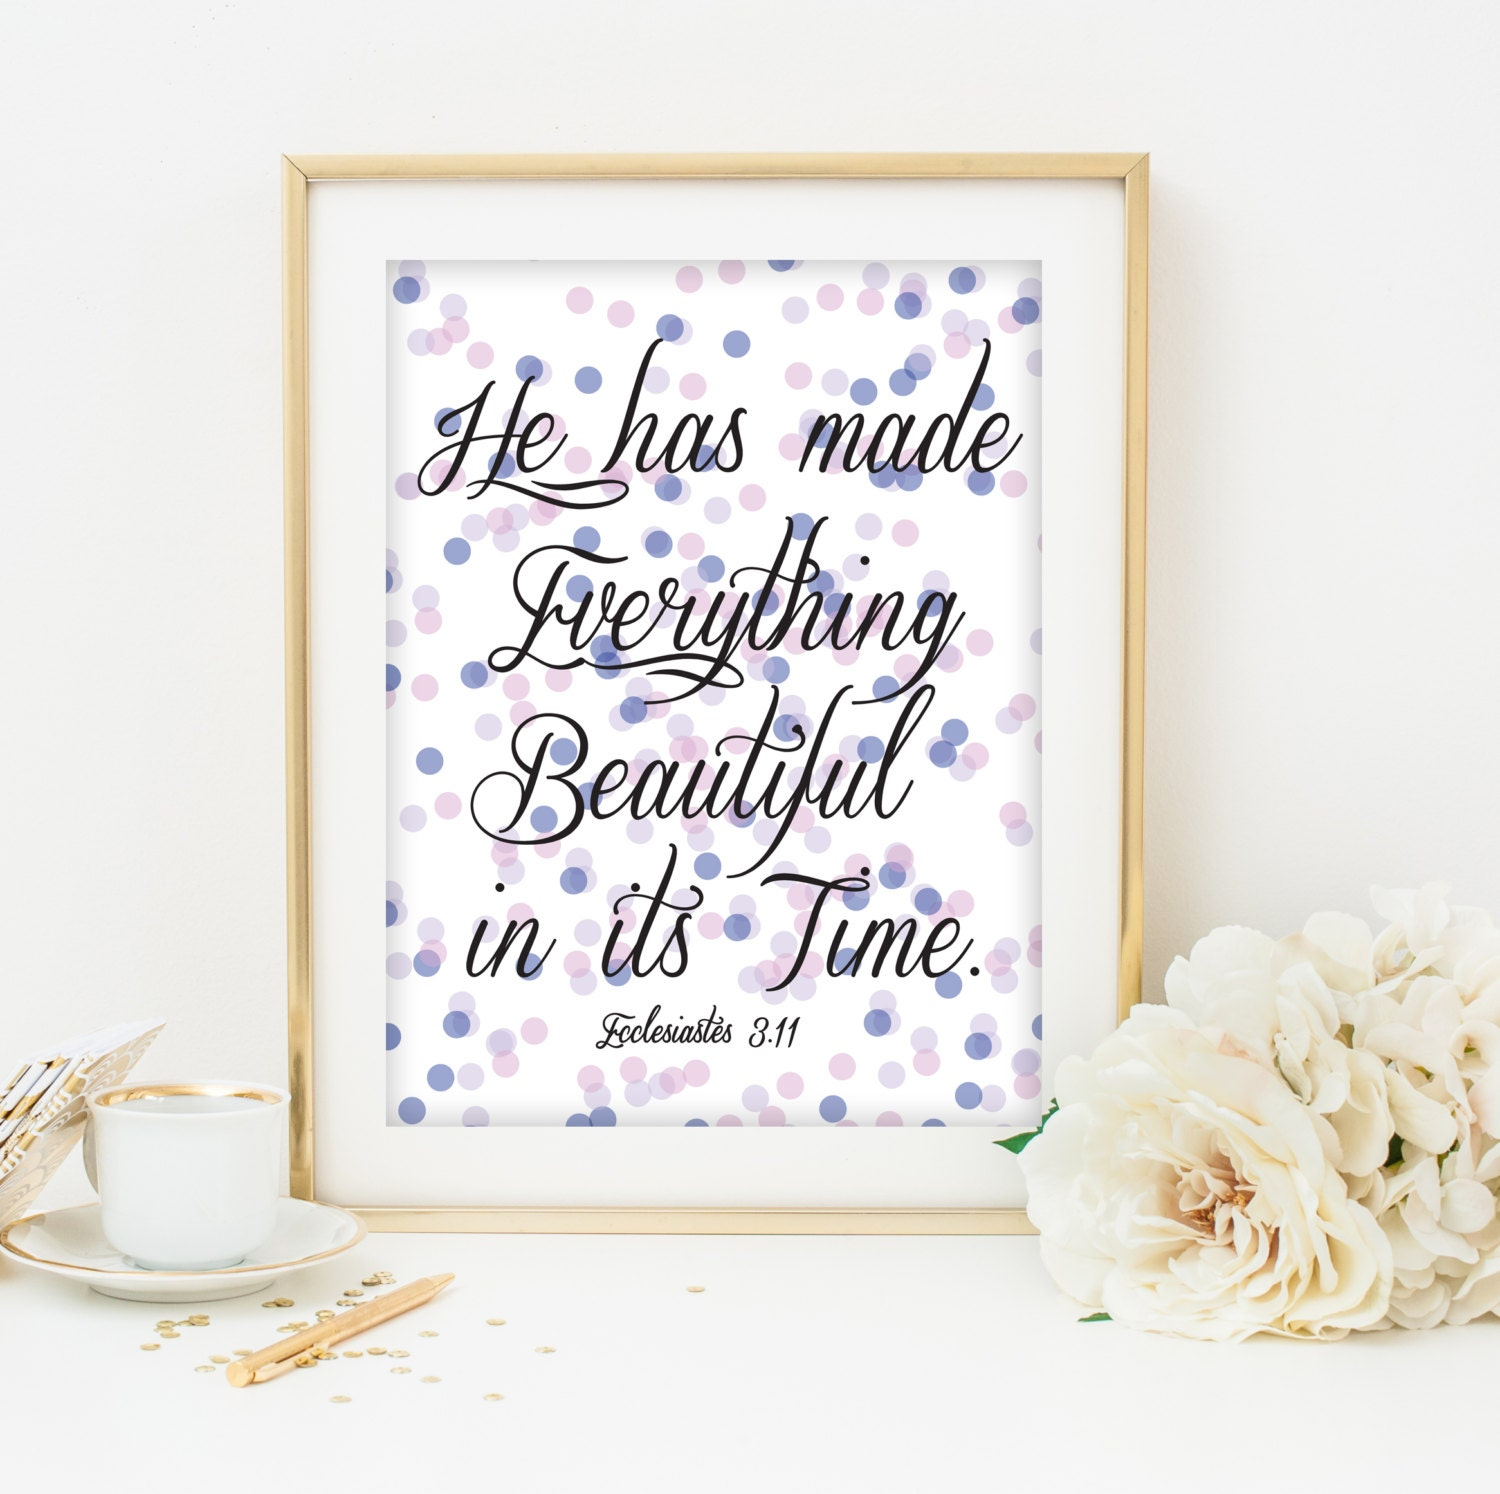 Wall Decor With Bible Verses : Bible verse art print printable wall decor scripture christian